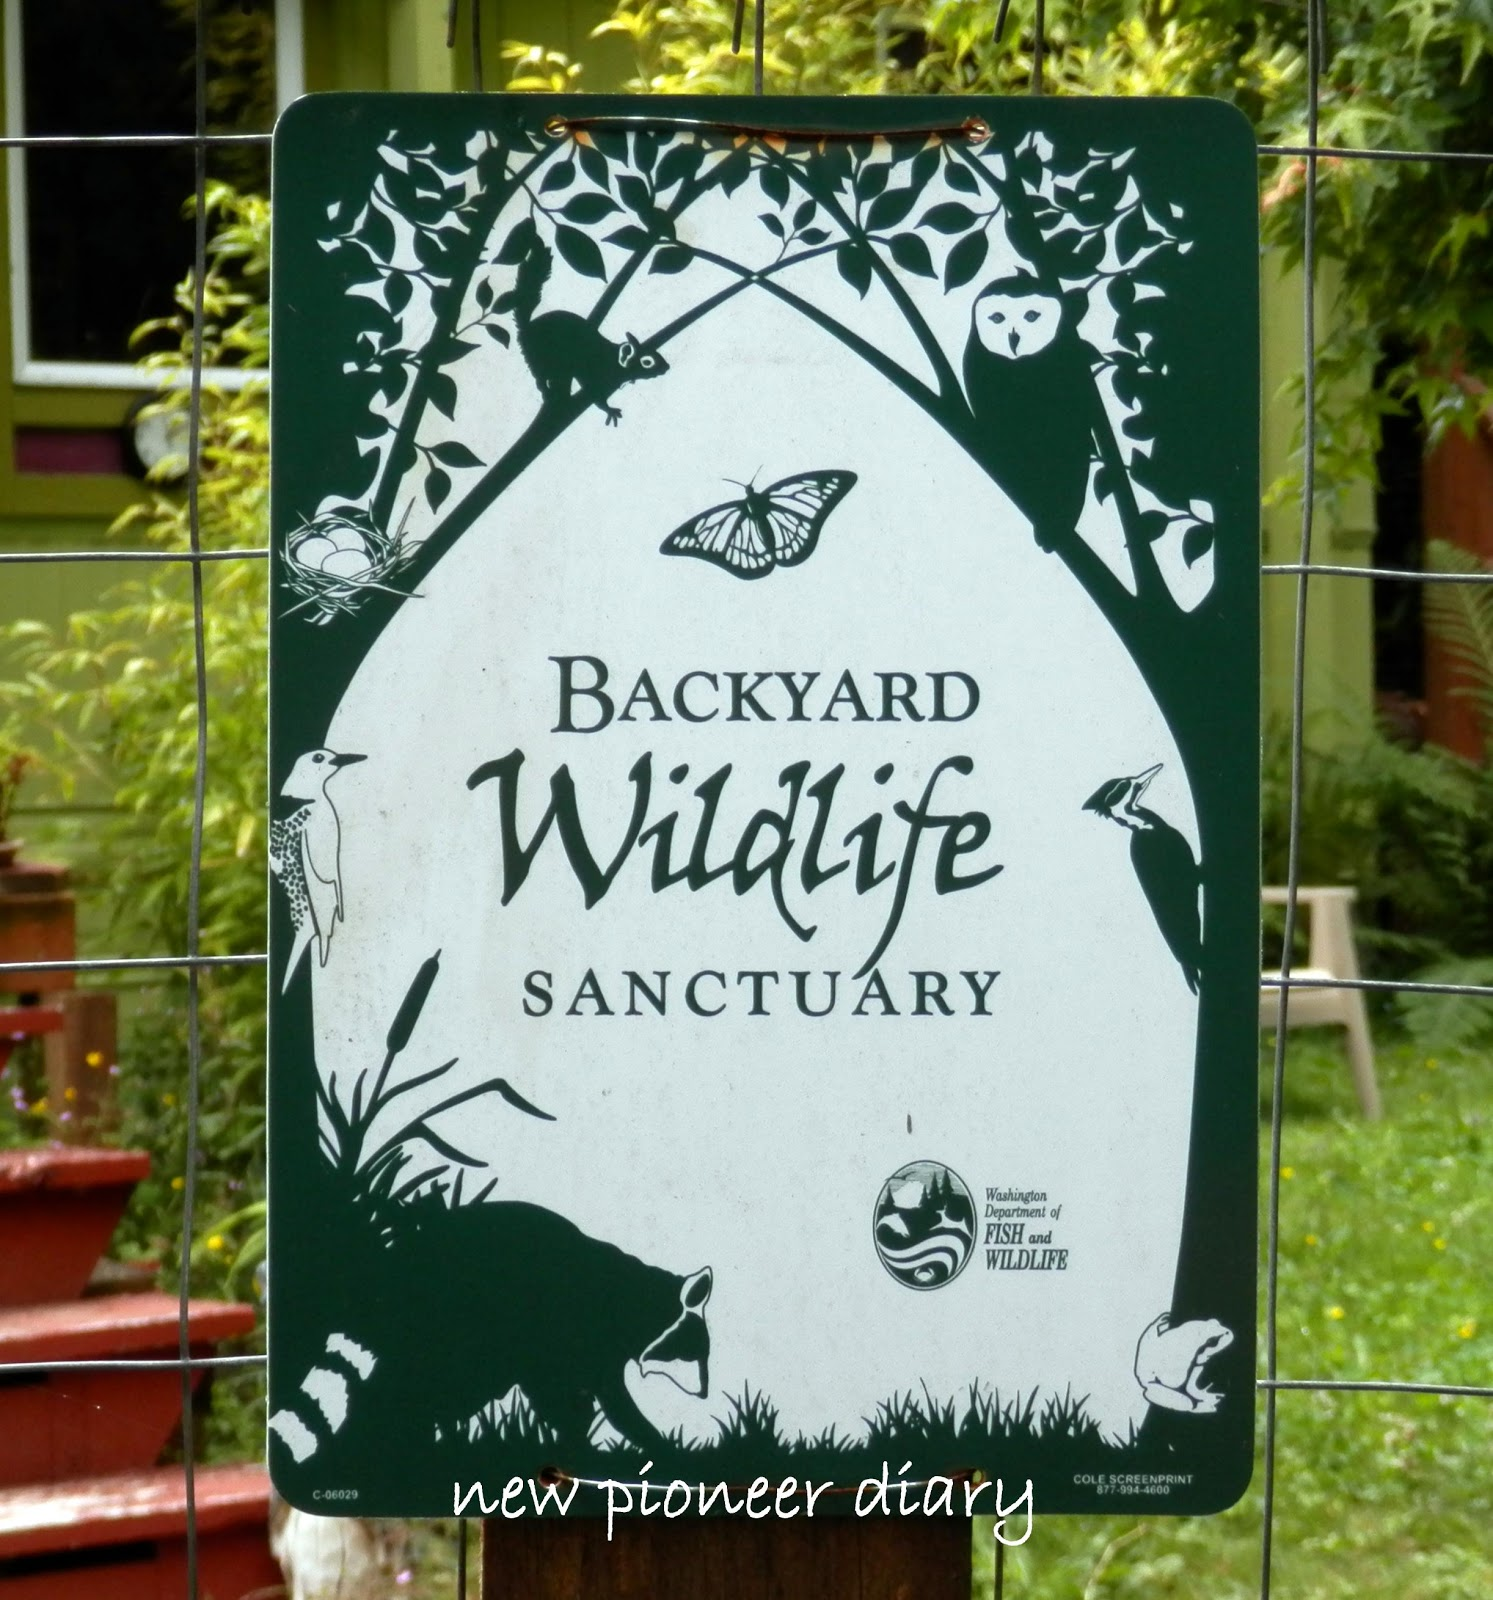 Backyard Wildlife Sanctuary